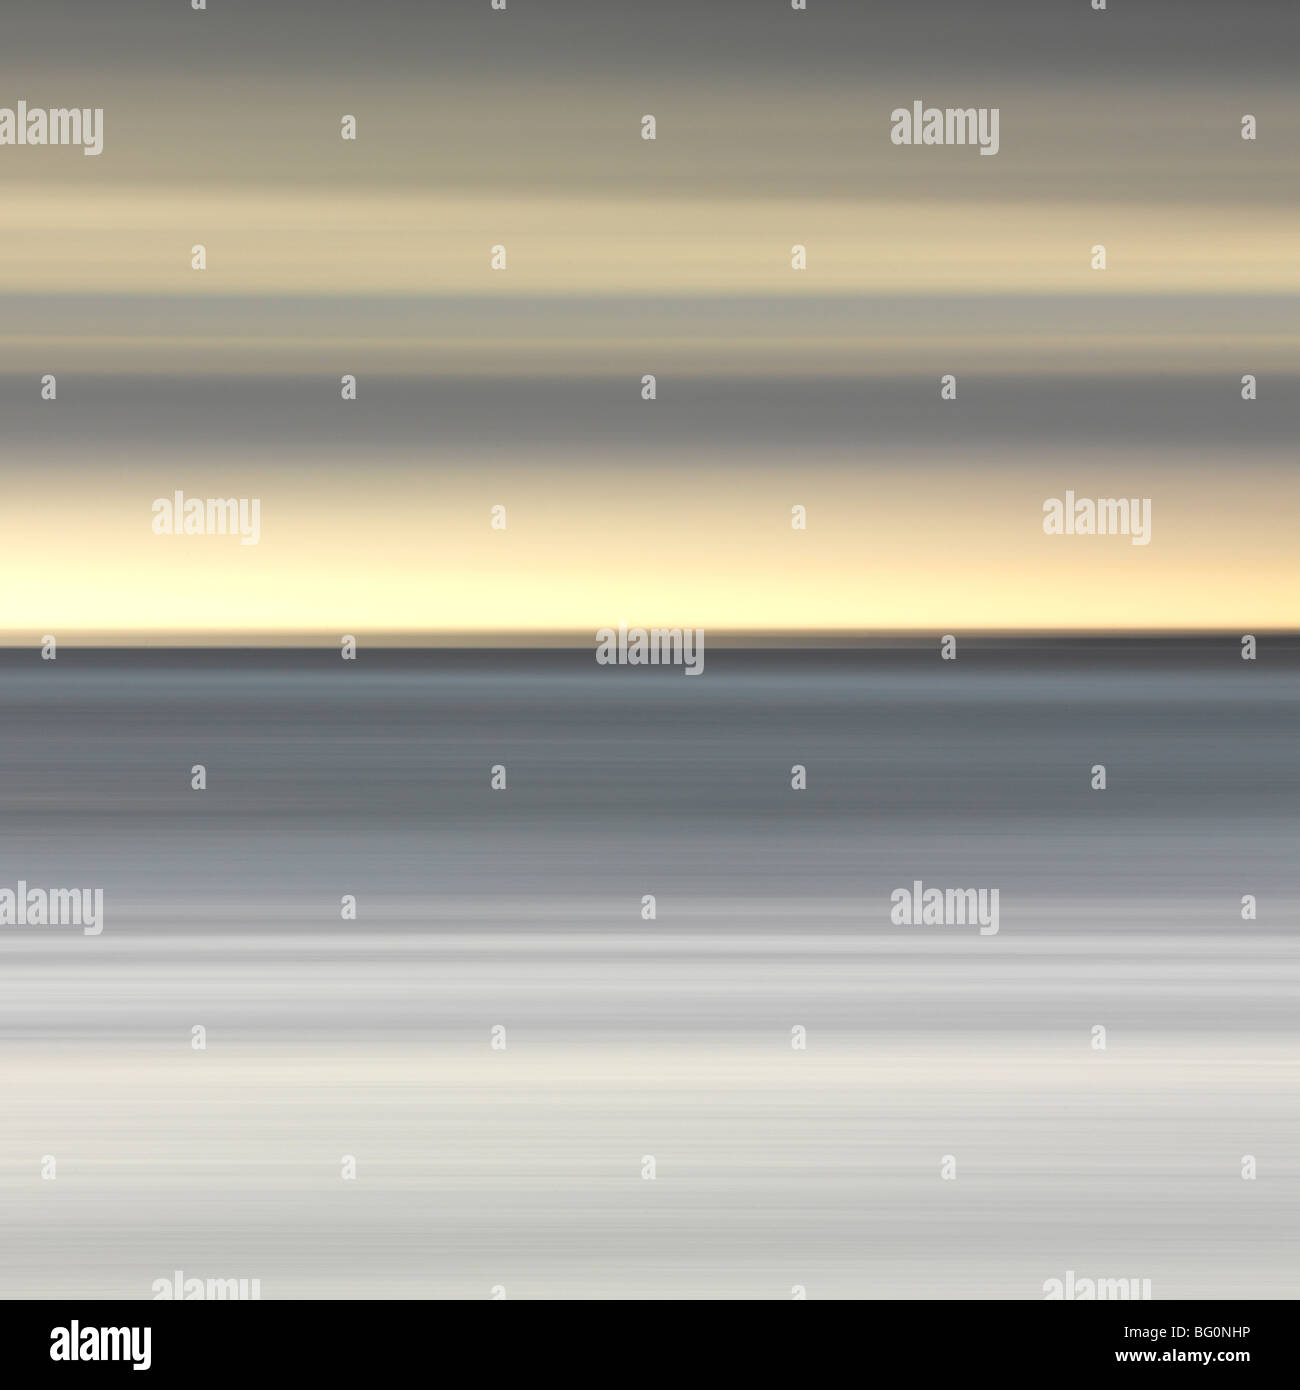 Abstract image of the view from Alnmouth Beach to the North Sea, Alnmouth, Northumberland, England, United Kingdom, - Stock Image